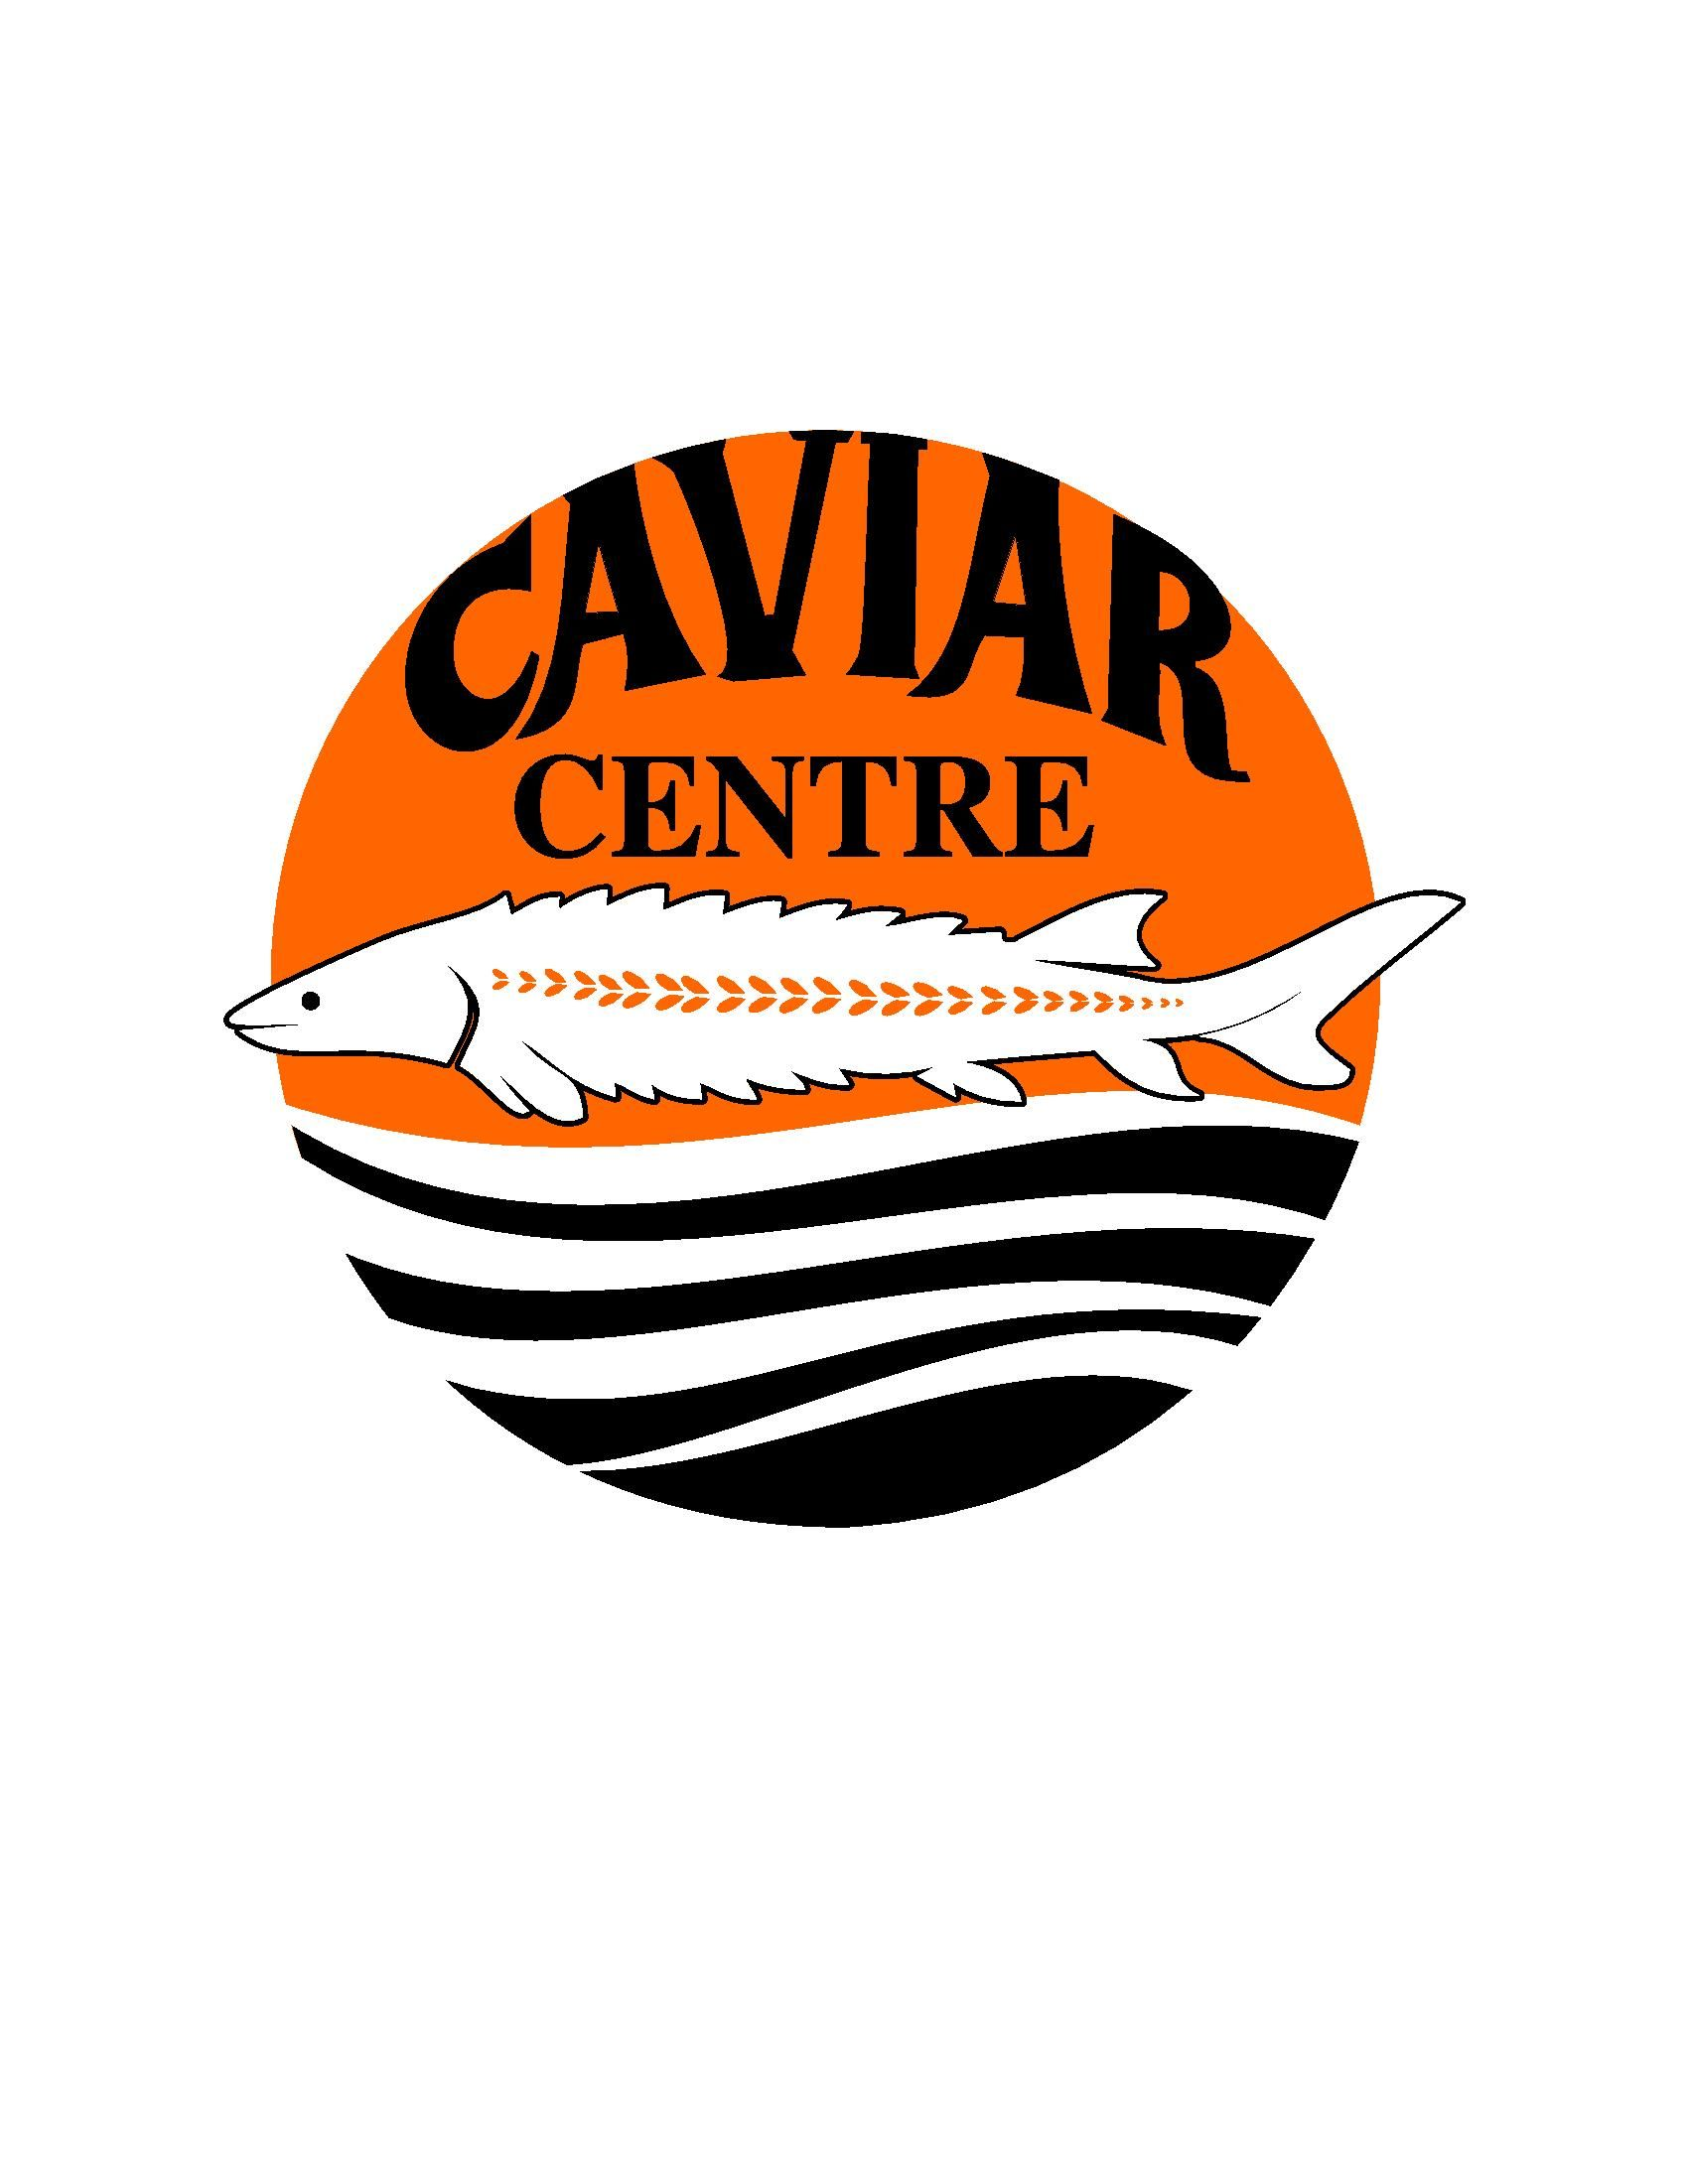 Caviar Centre Inc